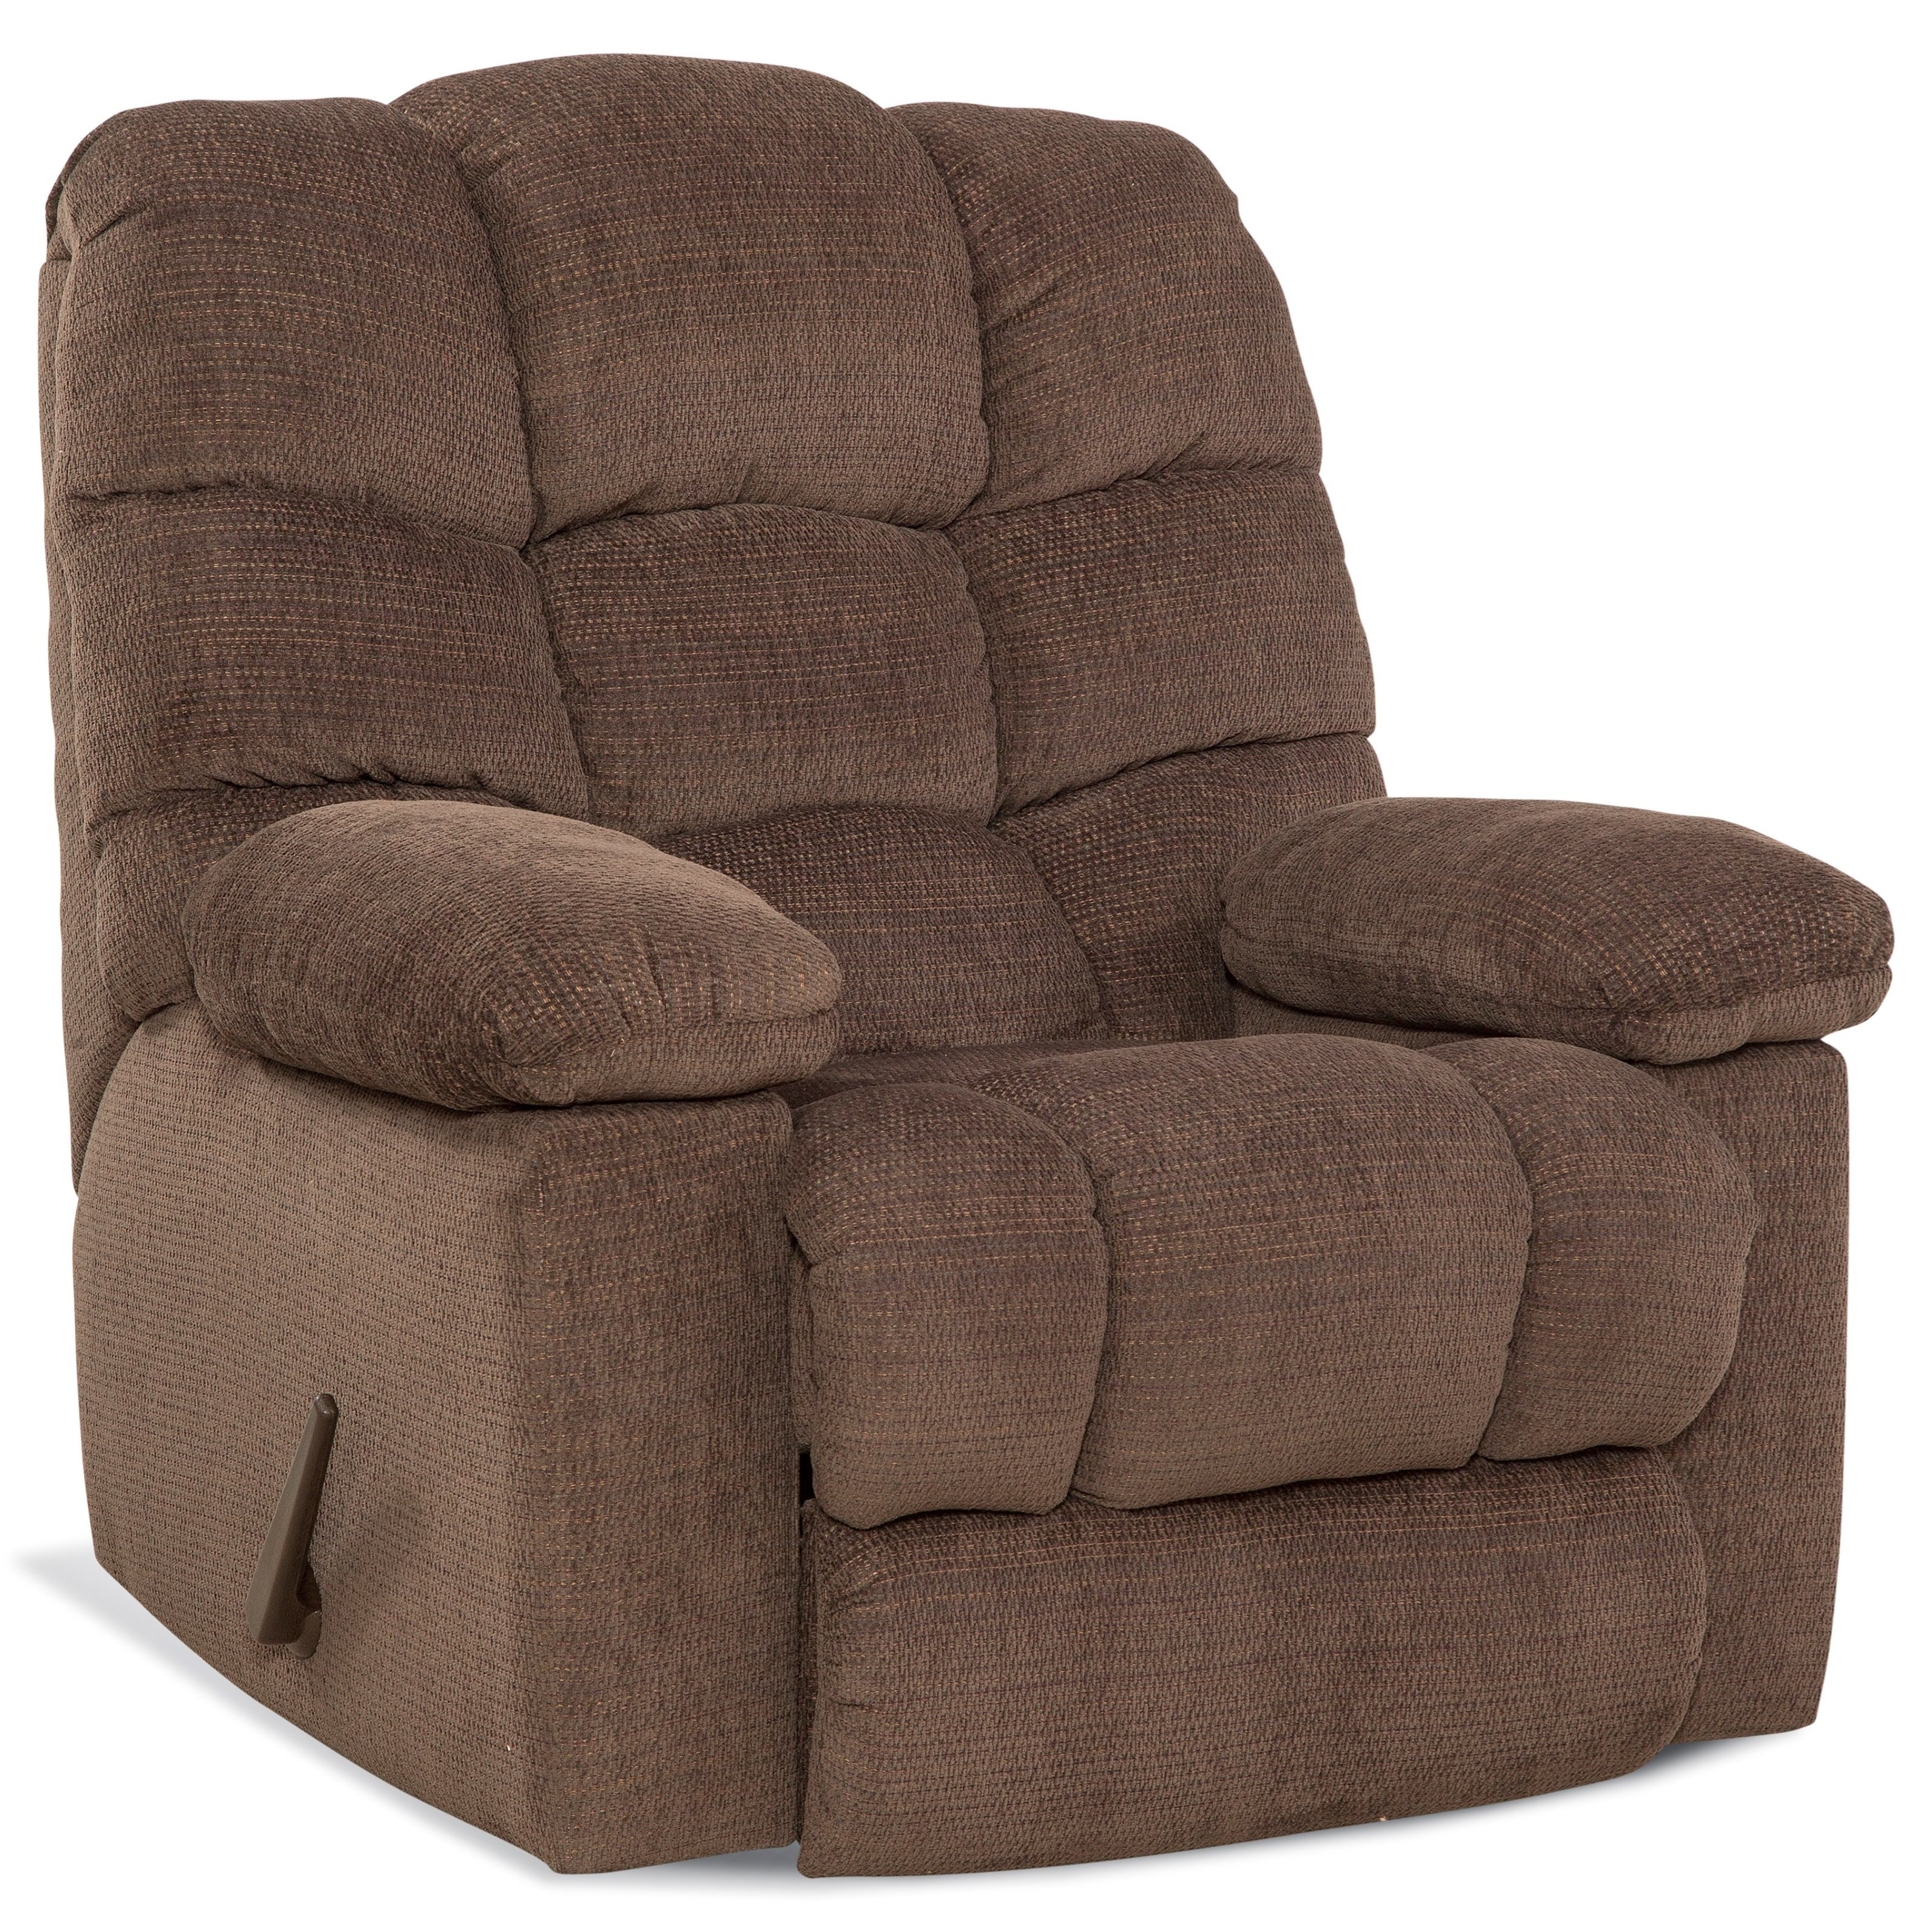 HomeStretch 160 Collection Rocker Recliner - Item Number: 160-91-21